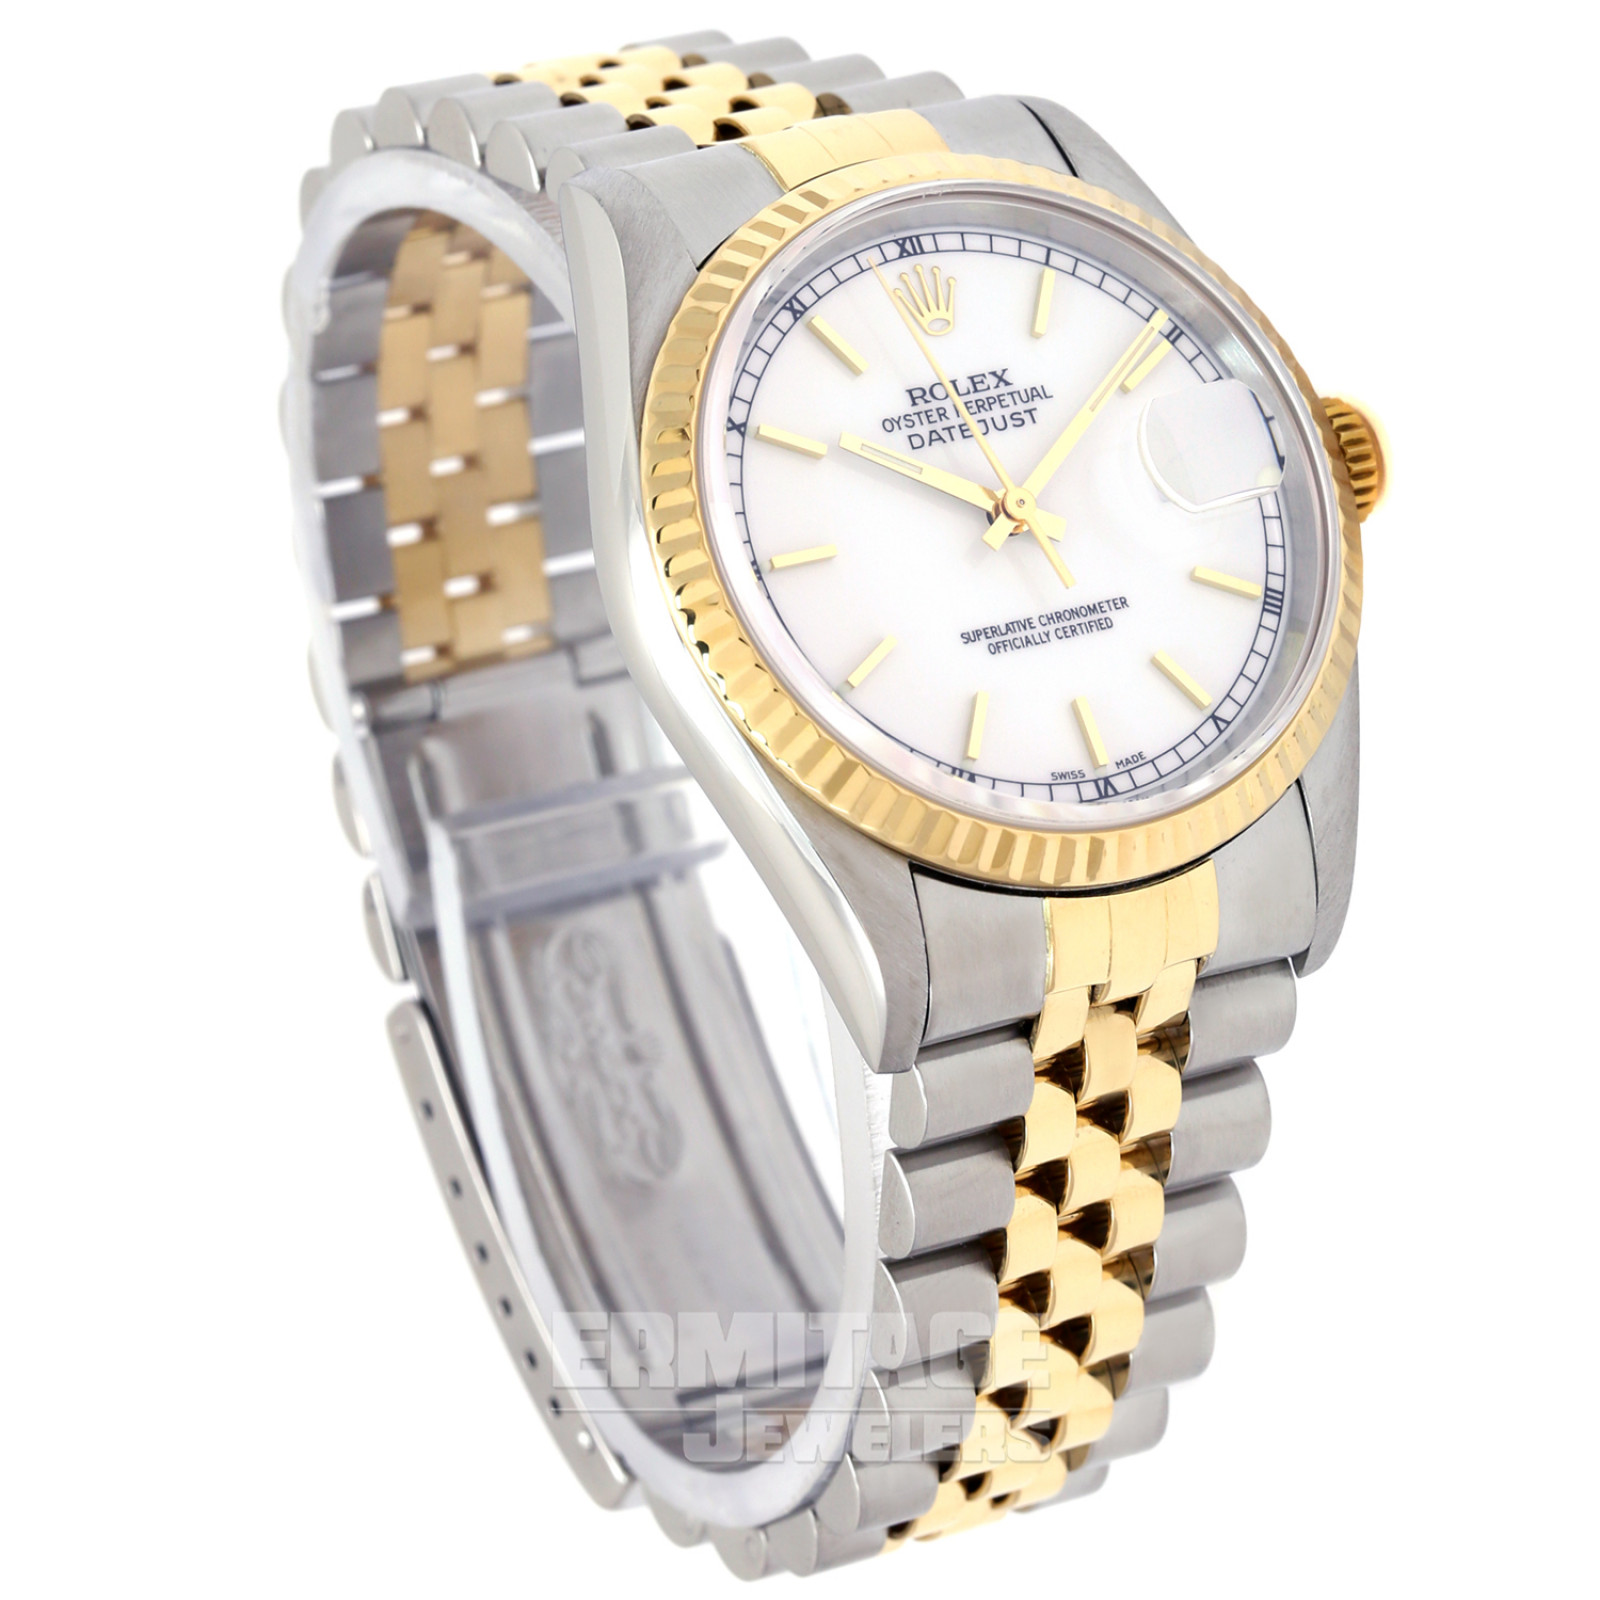 Rolex Datejust 16233 36 mm with Gold Index on White